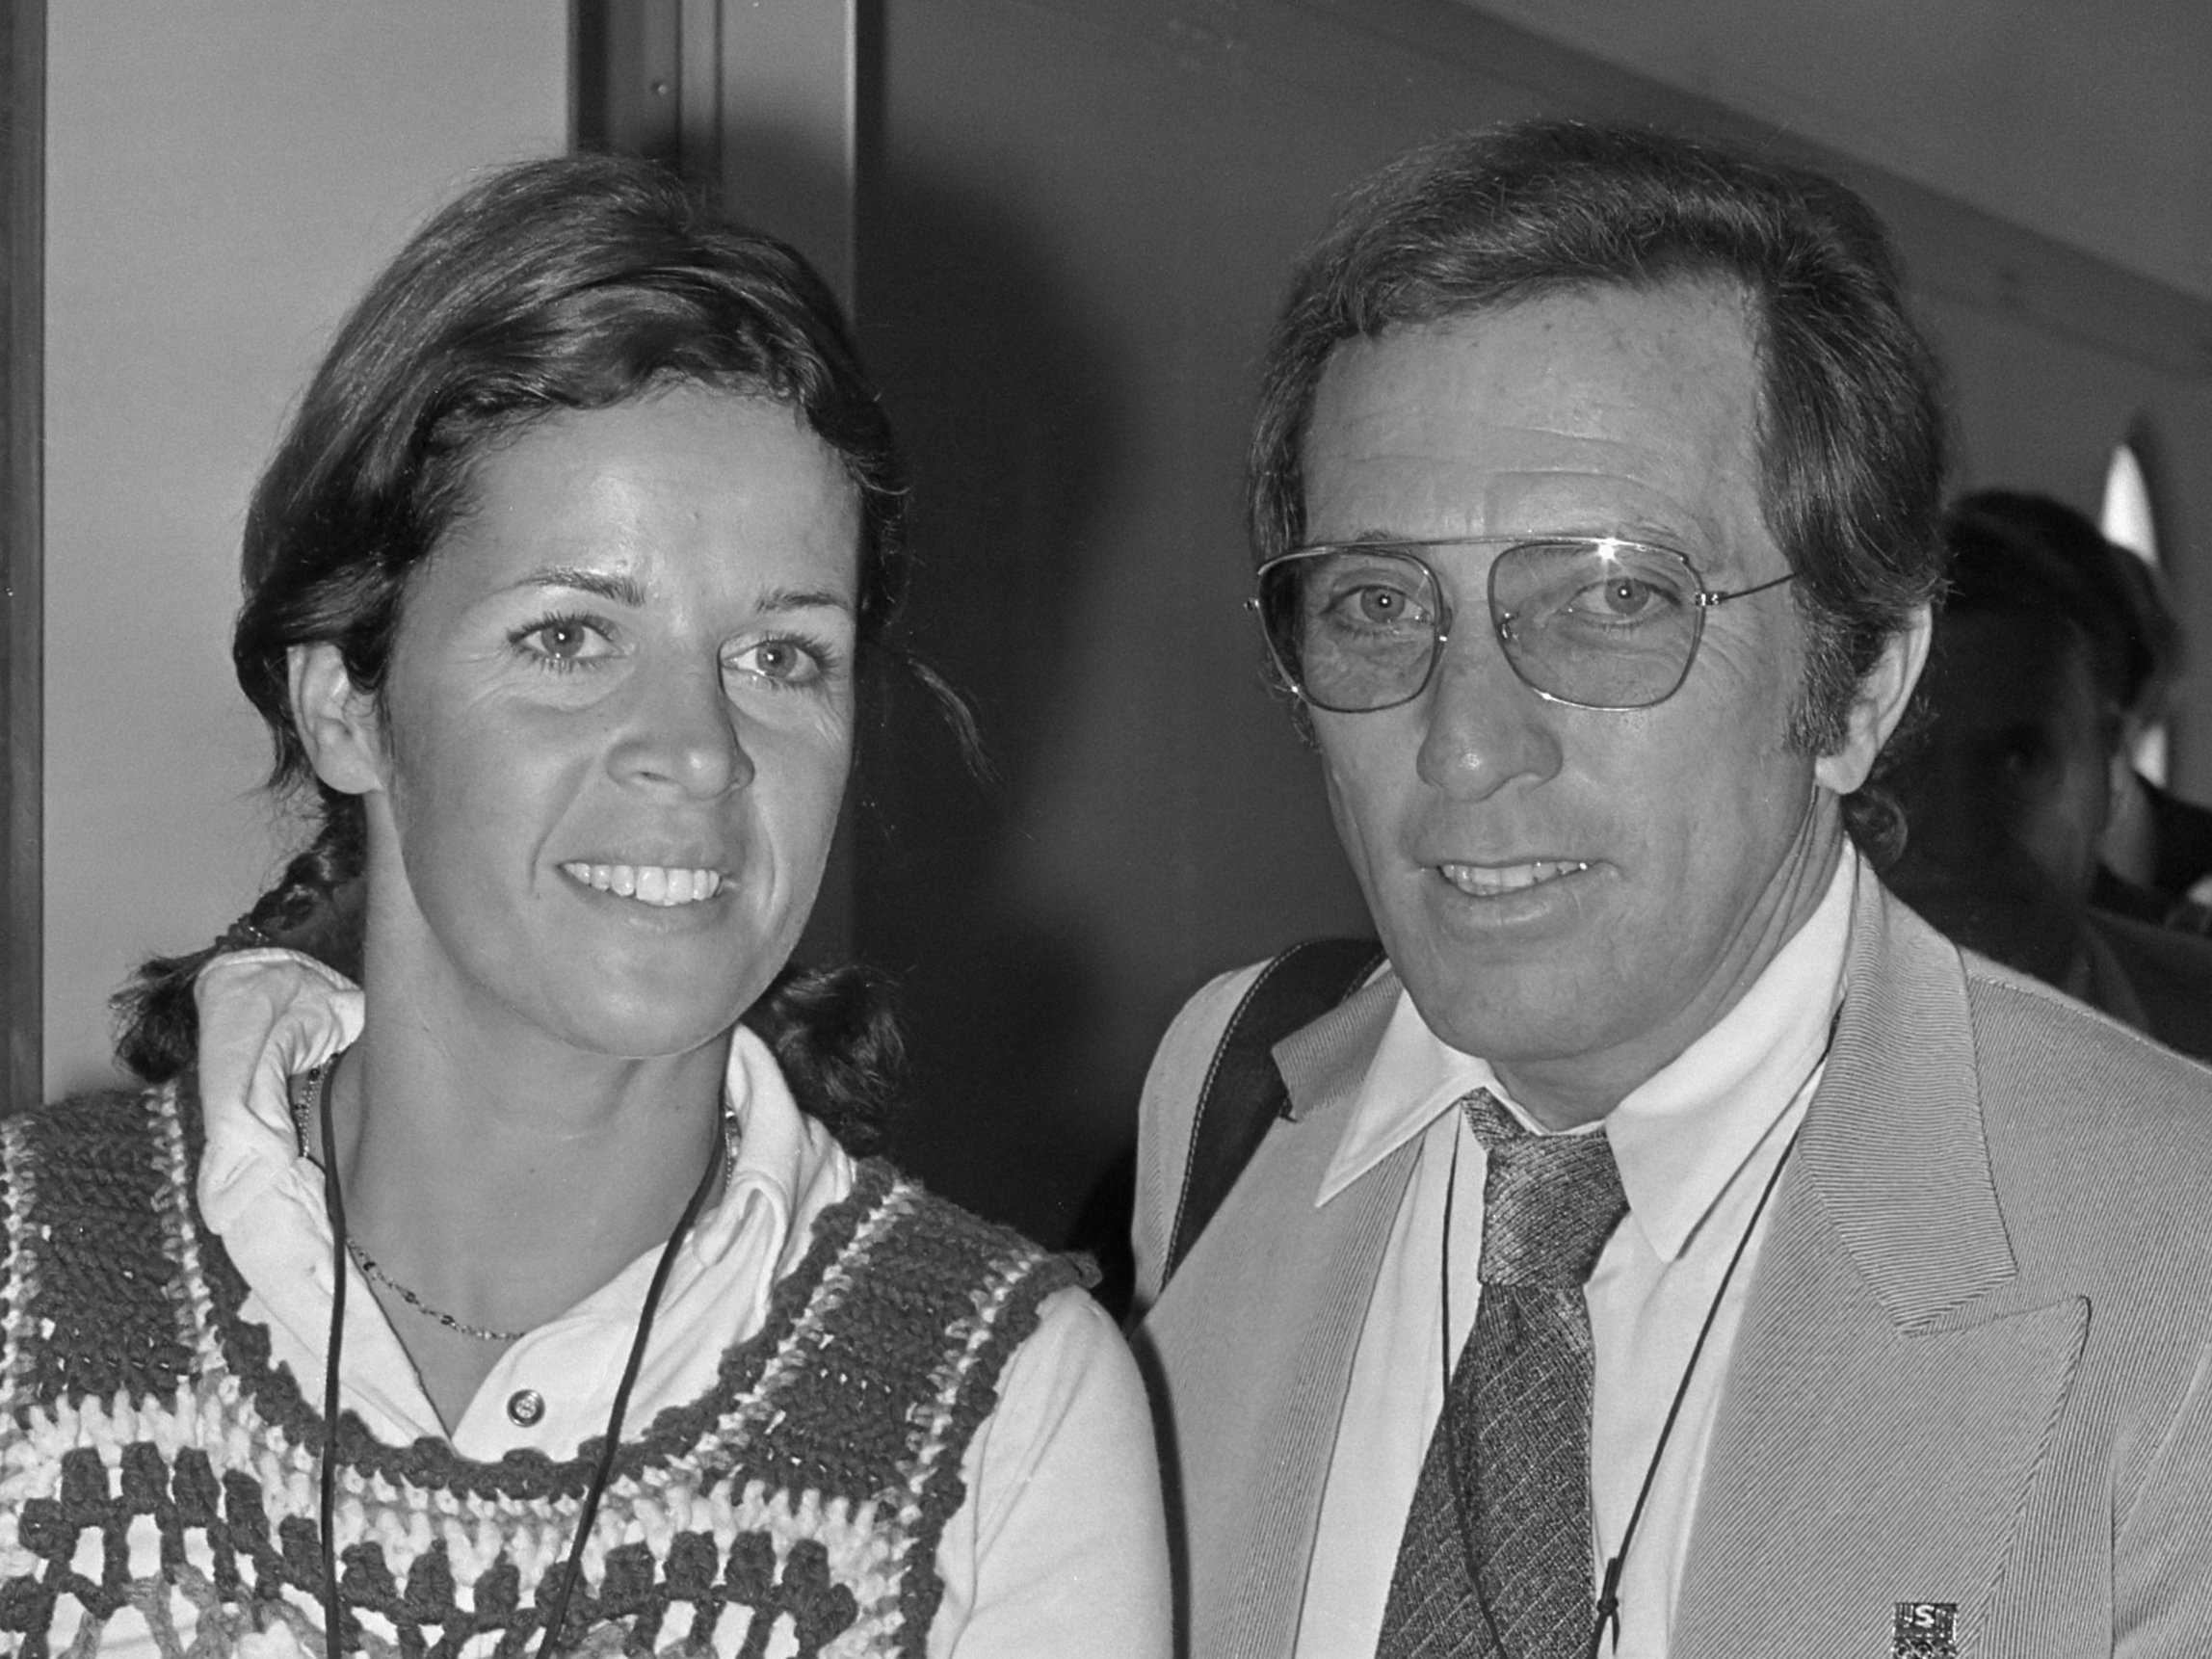 Andy Williams and Claudine Longet circa 1972. | Source: Wikimedia Commons